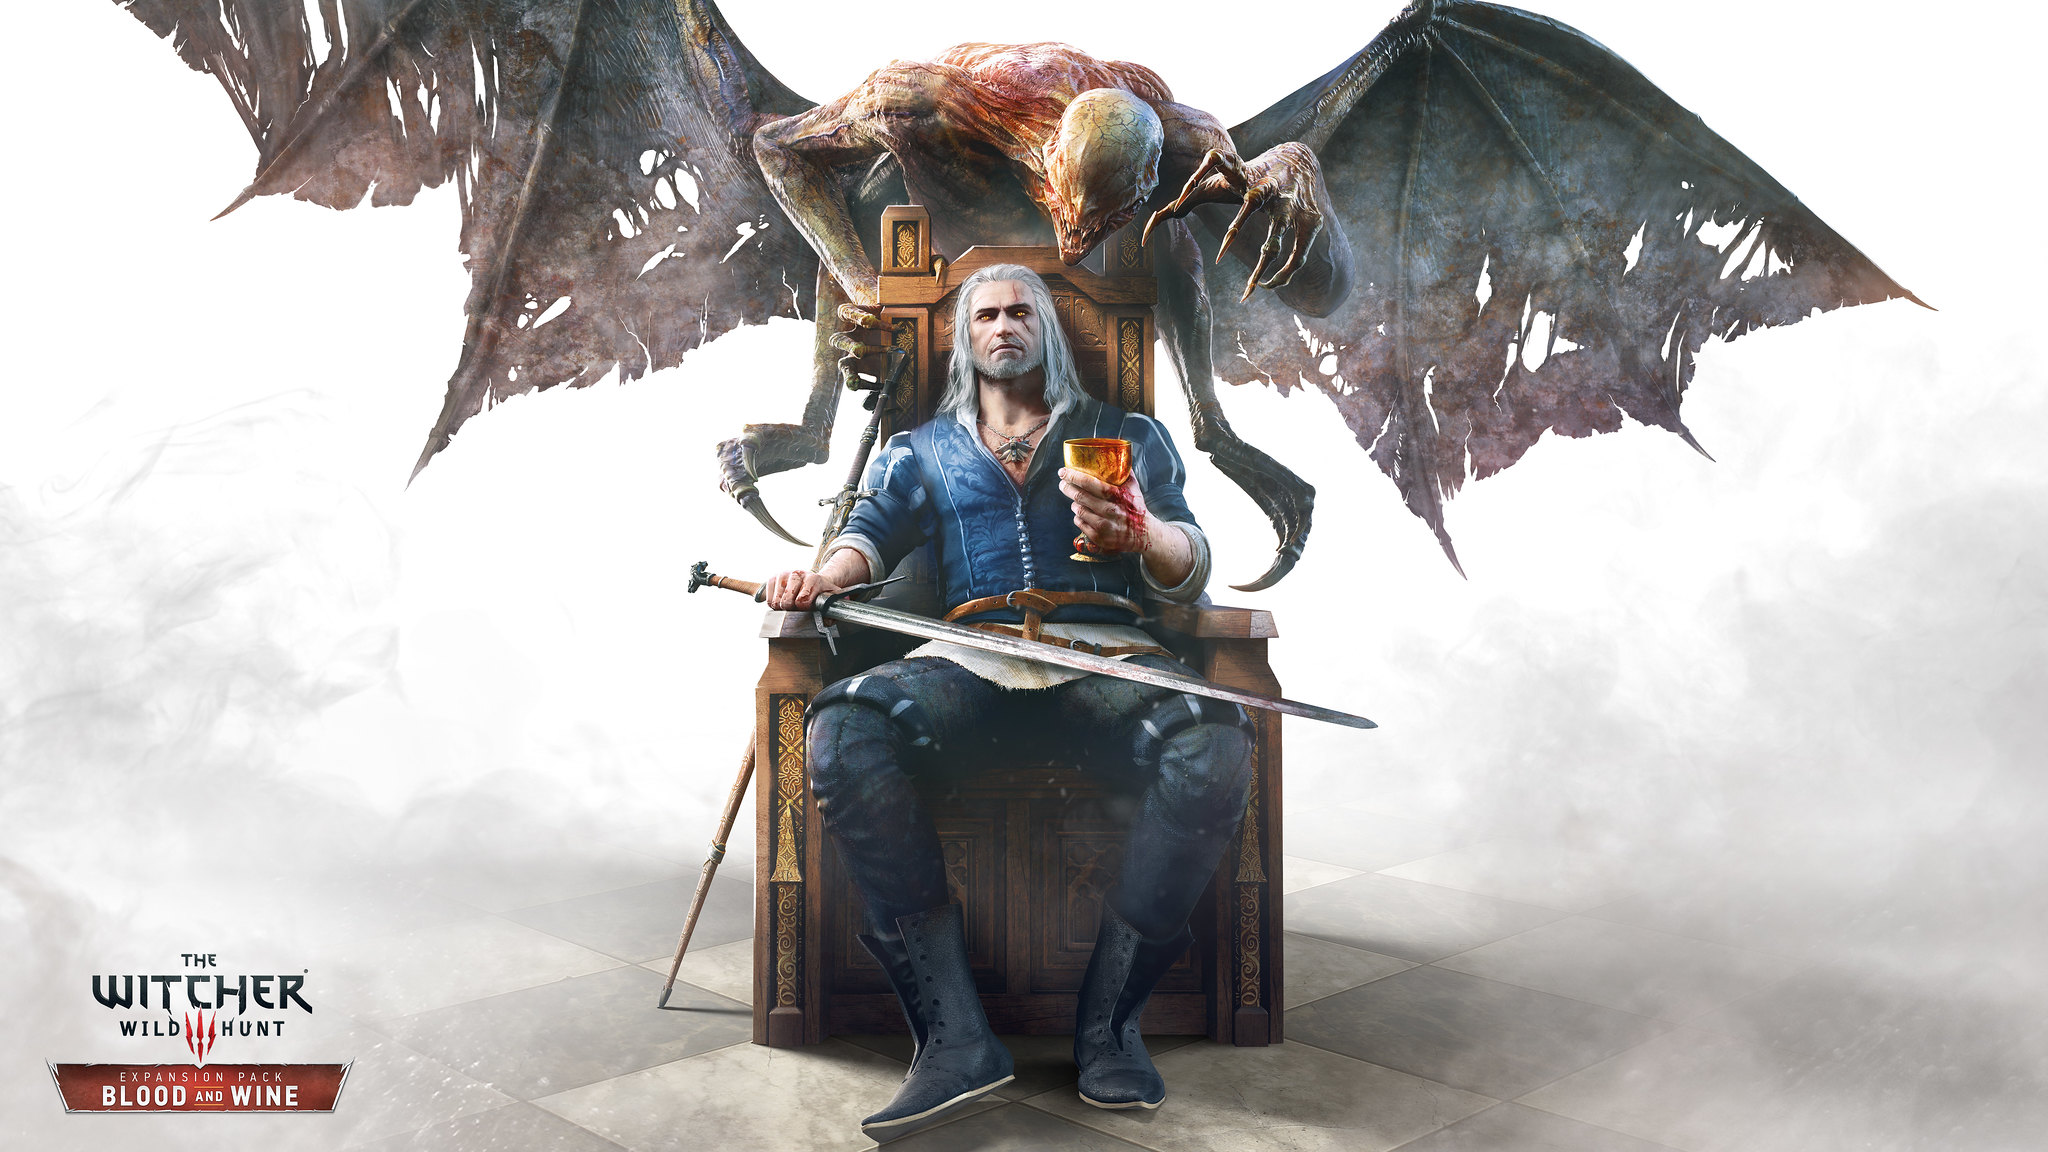 wallpaper_5120_witcher_3_wild_hunt_the_blood_and_wine